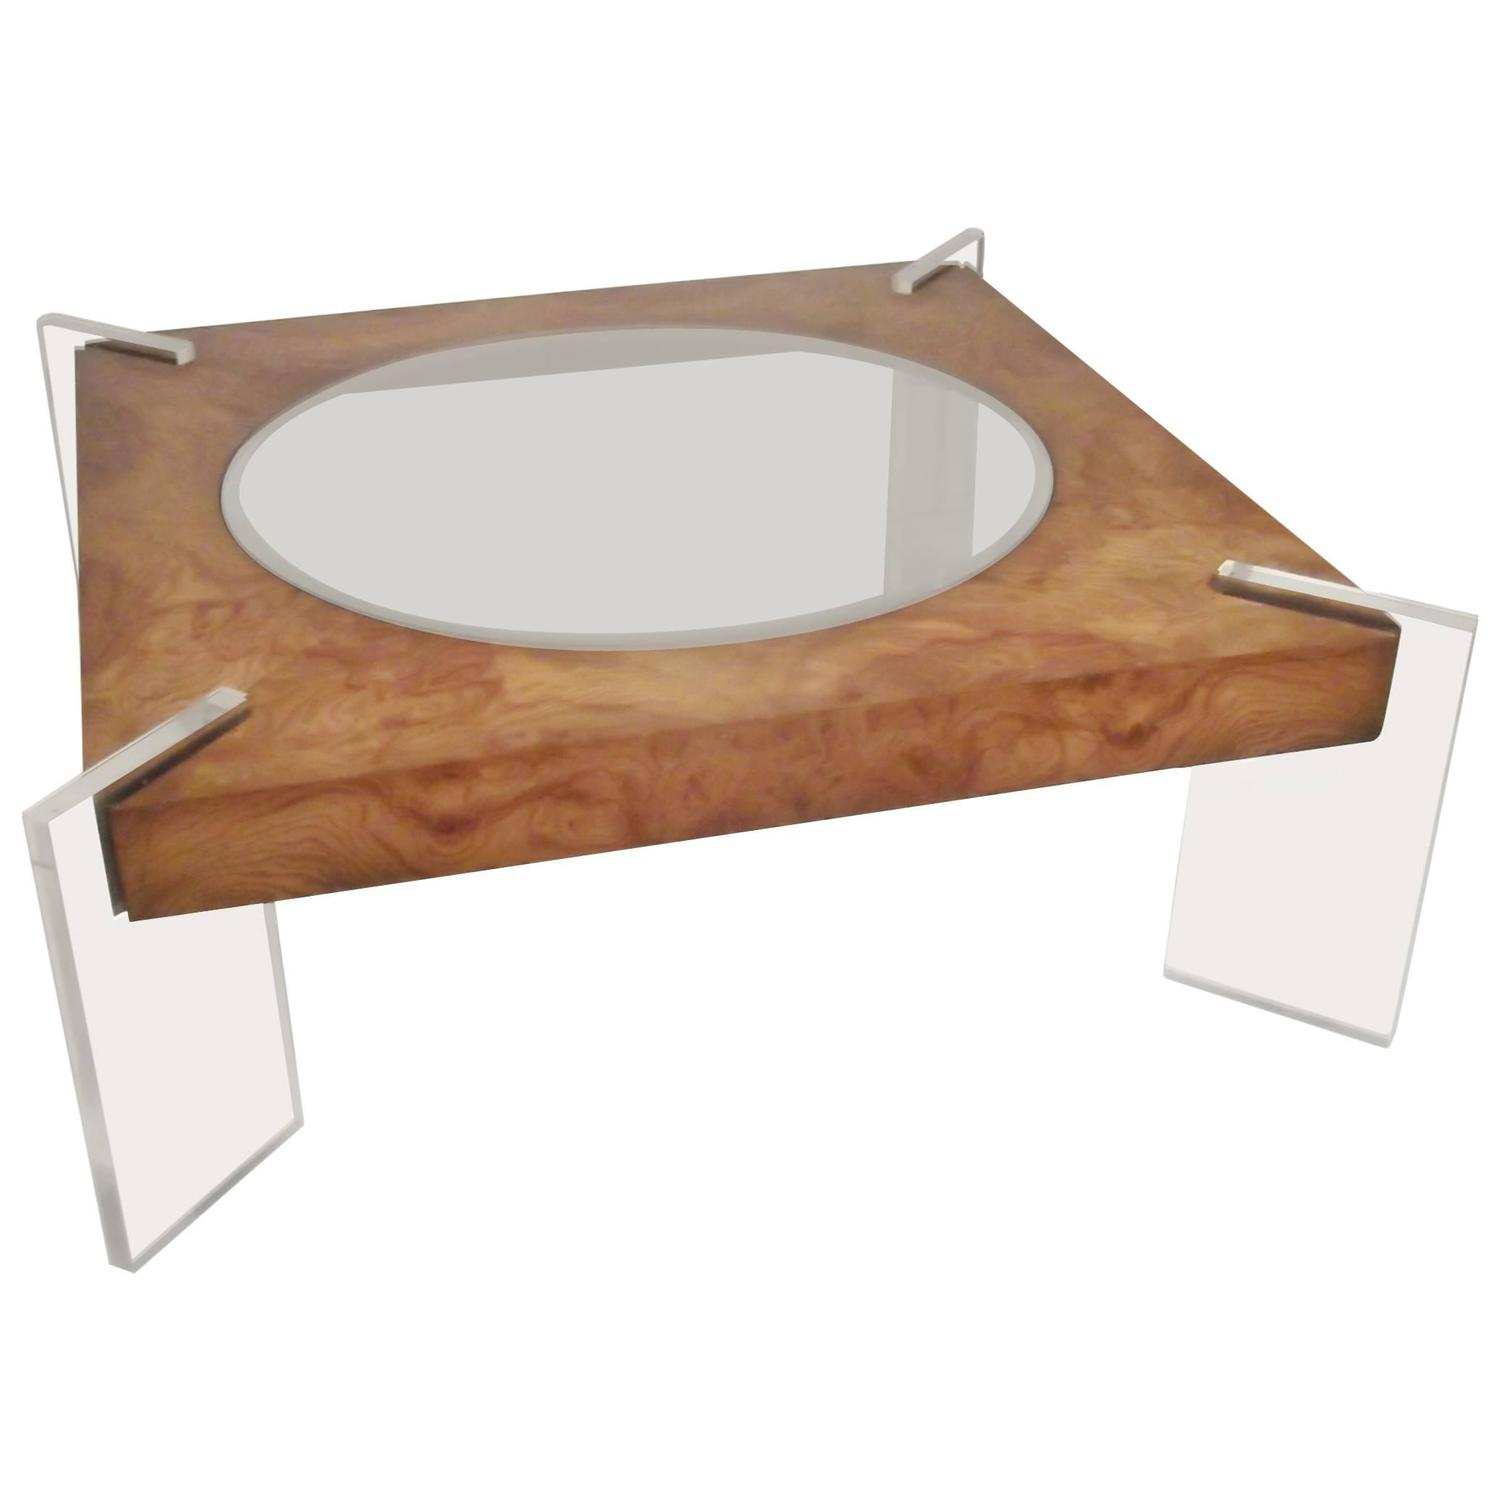 Vladimir kagan lucite and burl walnut coffee table for sale at 1stdibs geotapseo Gallery